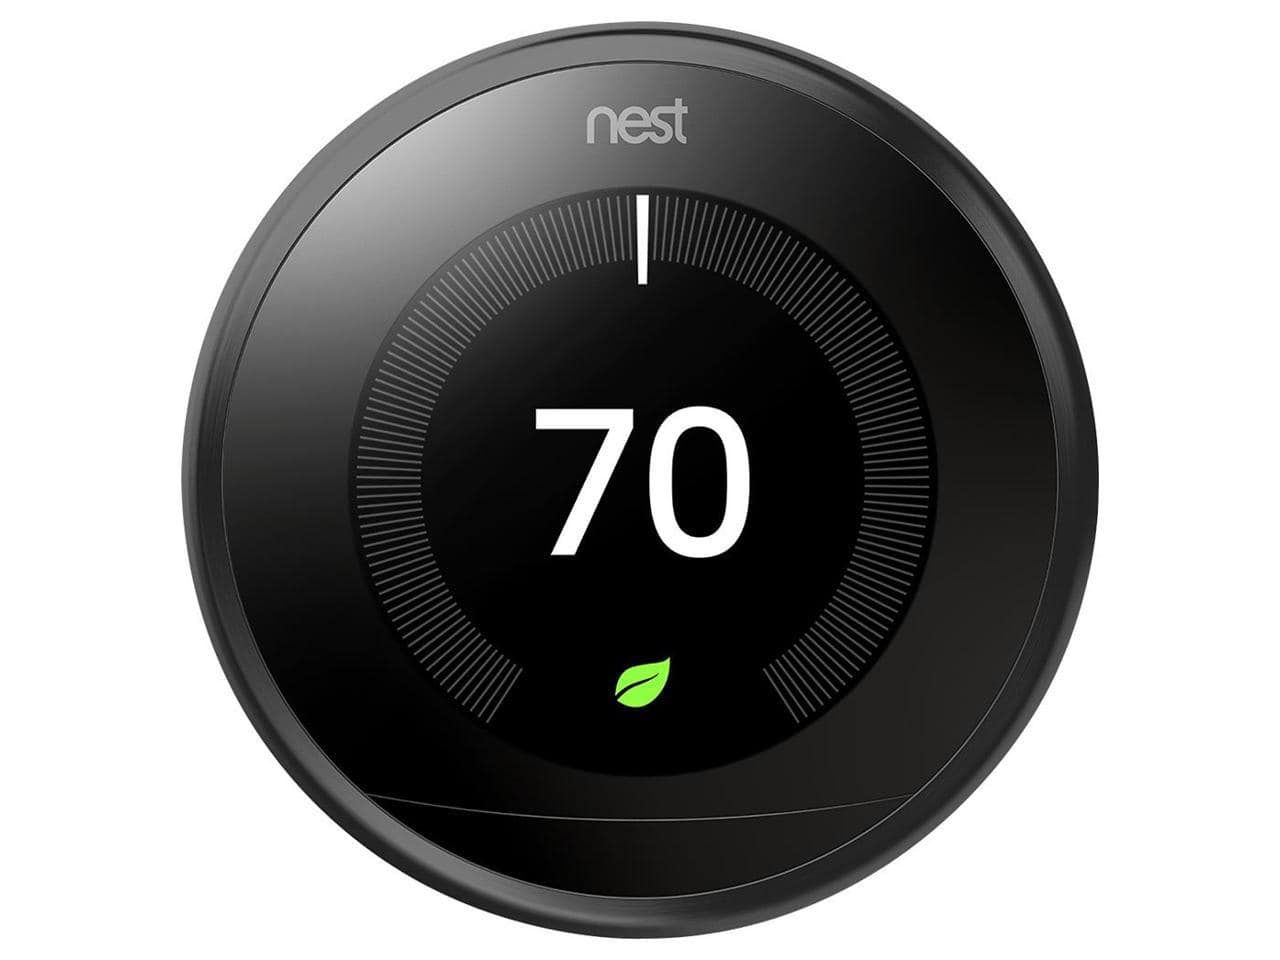 Nest Learning Thermostat in Black (3rd Generation) + $10 Newegg Gift Card $175 w/ MasterPass Checkout + Free Shipping via Newegg